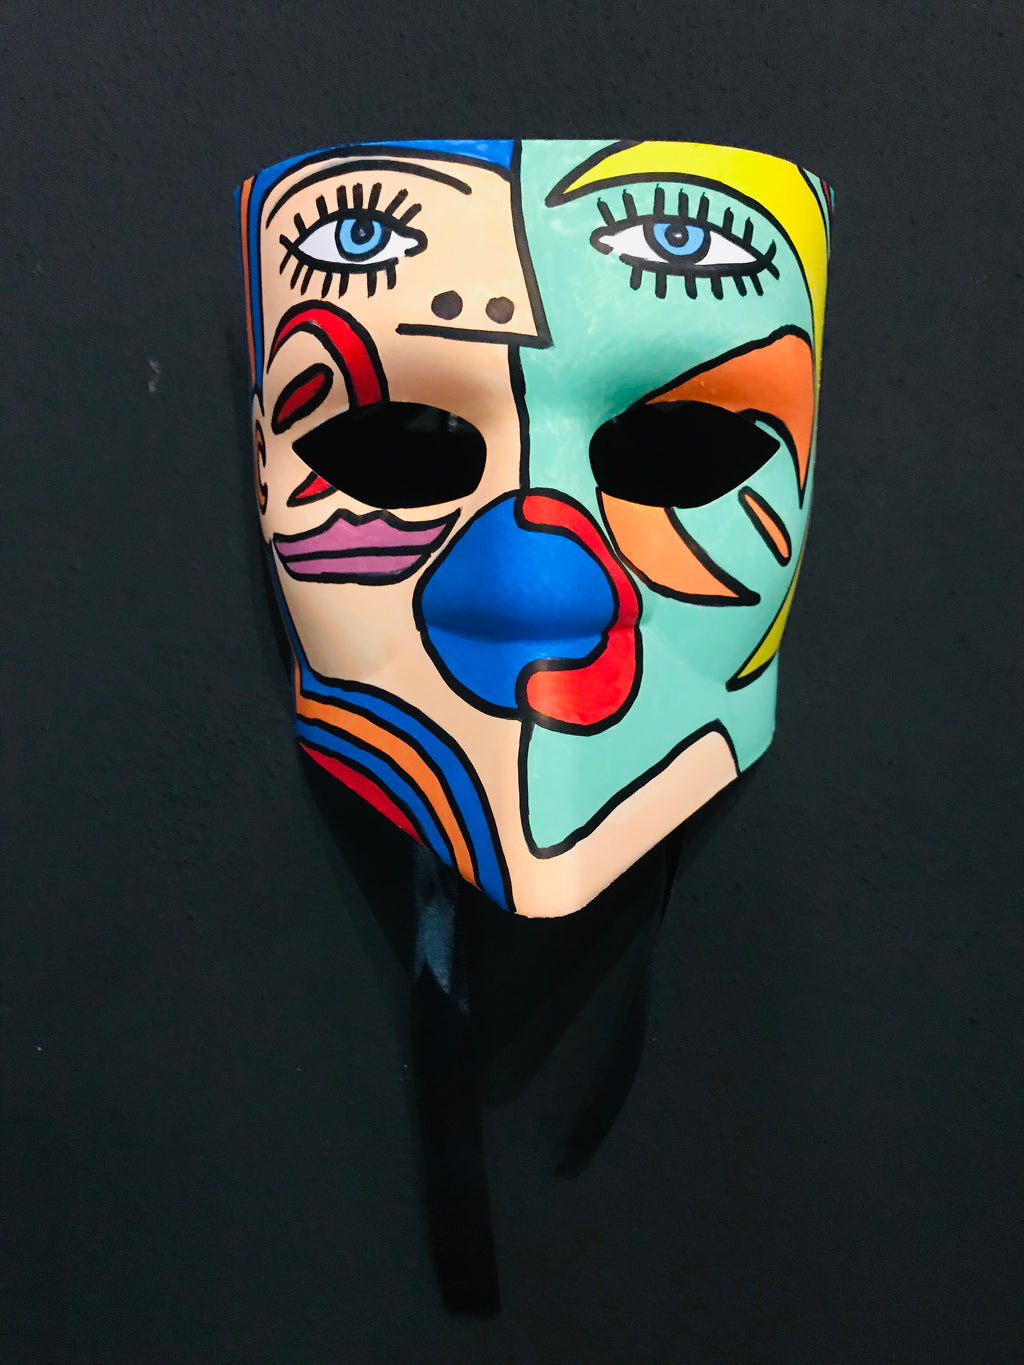 Venetian Mask 1 - painted with acrylic